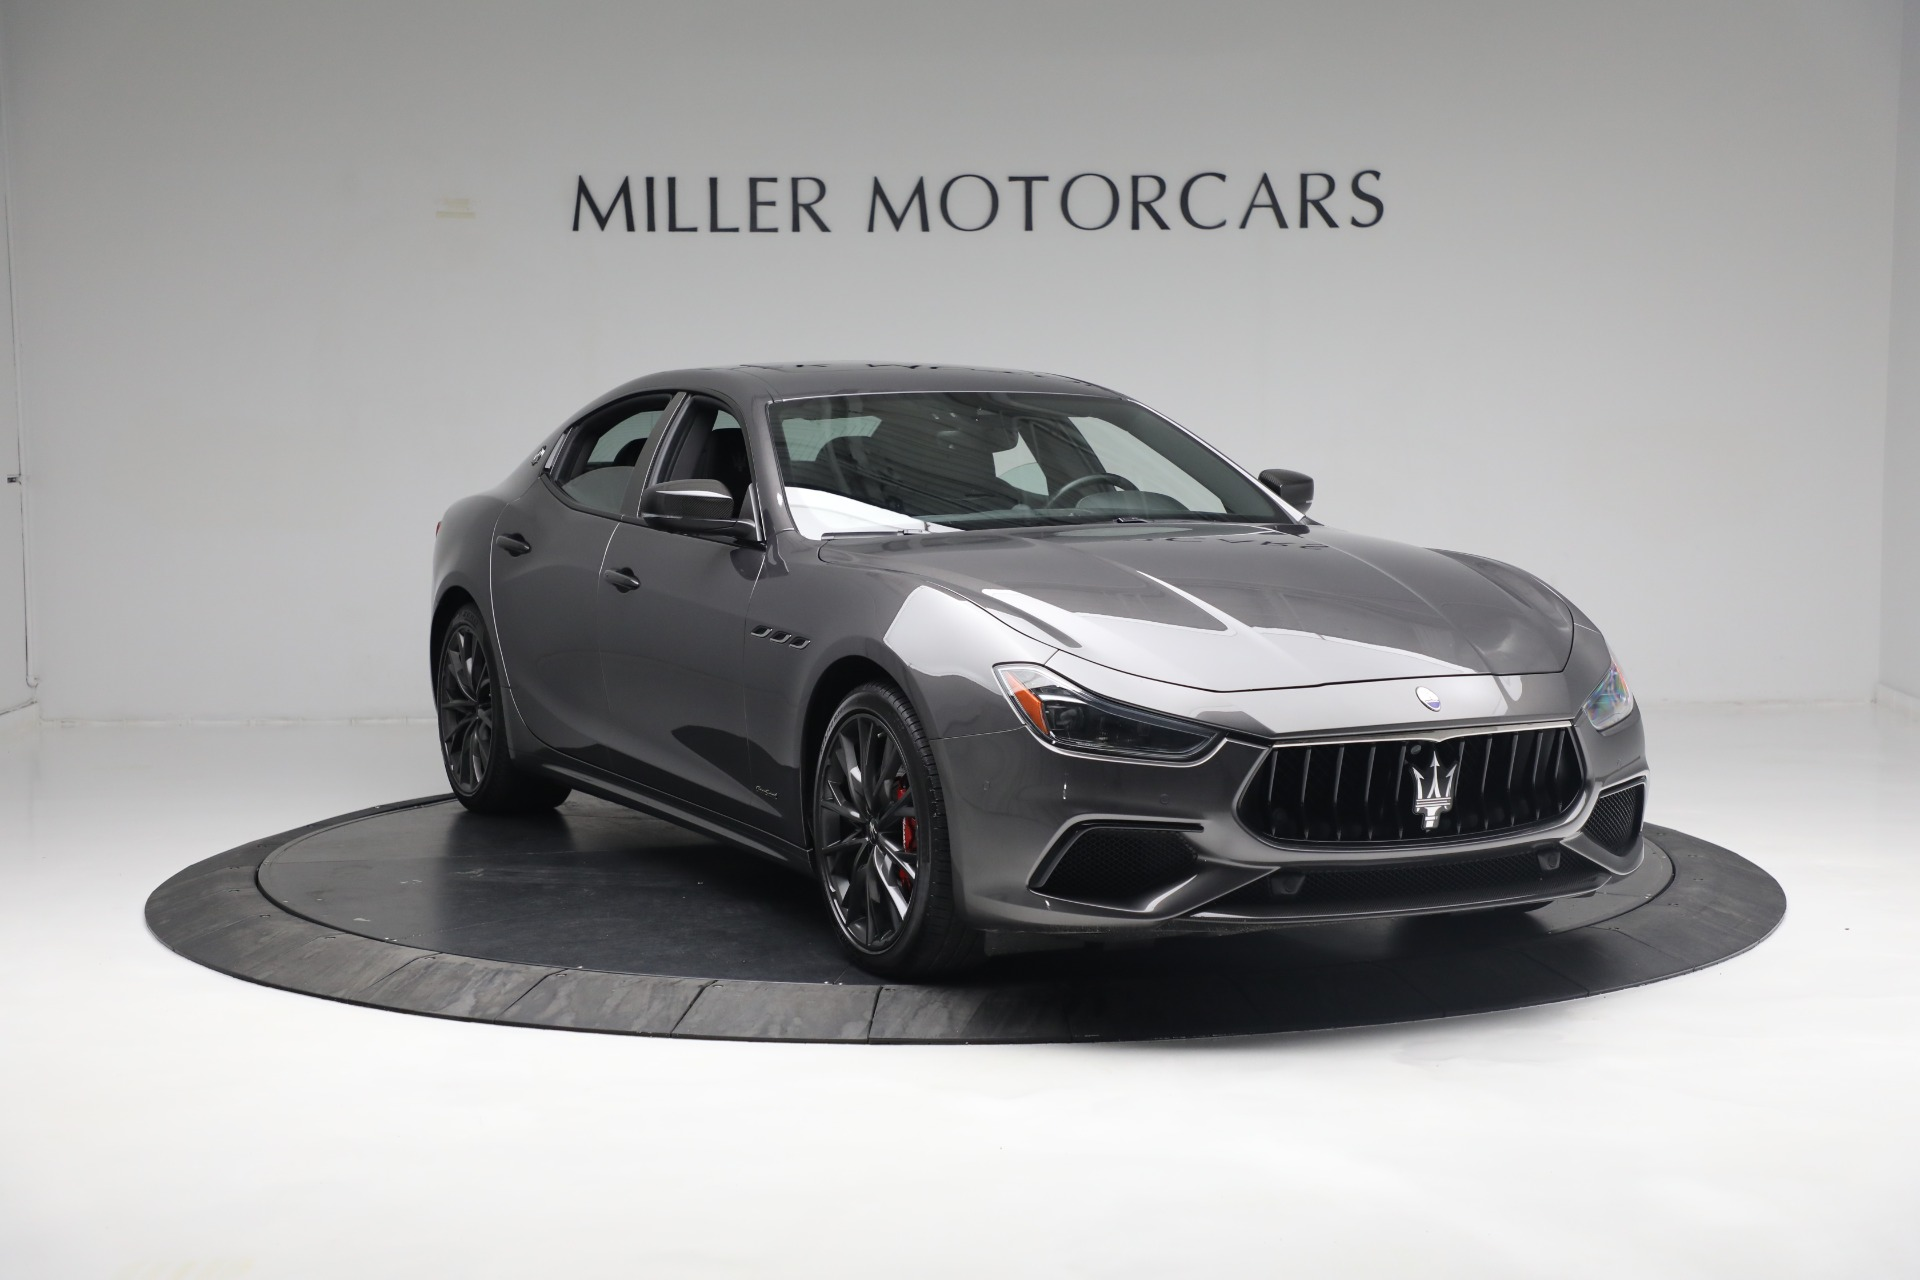 New 2019 Maserati Ghibli S Q4 GranSport For Sale In Westport, CT 2927_p11